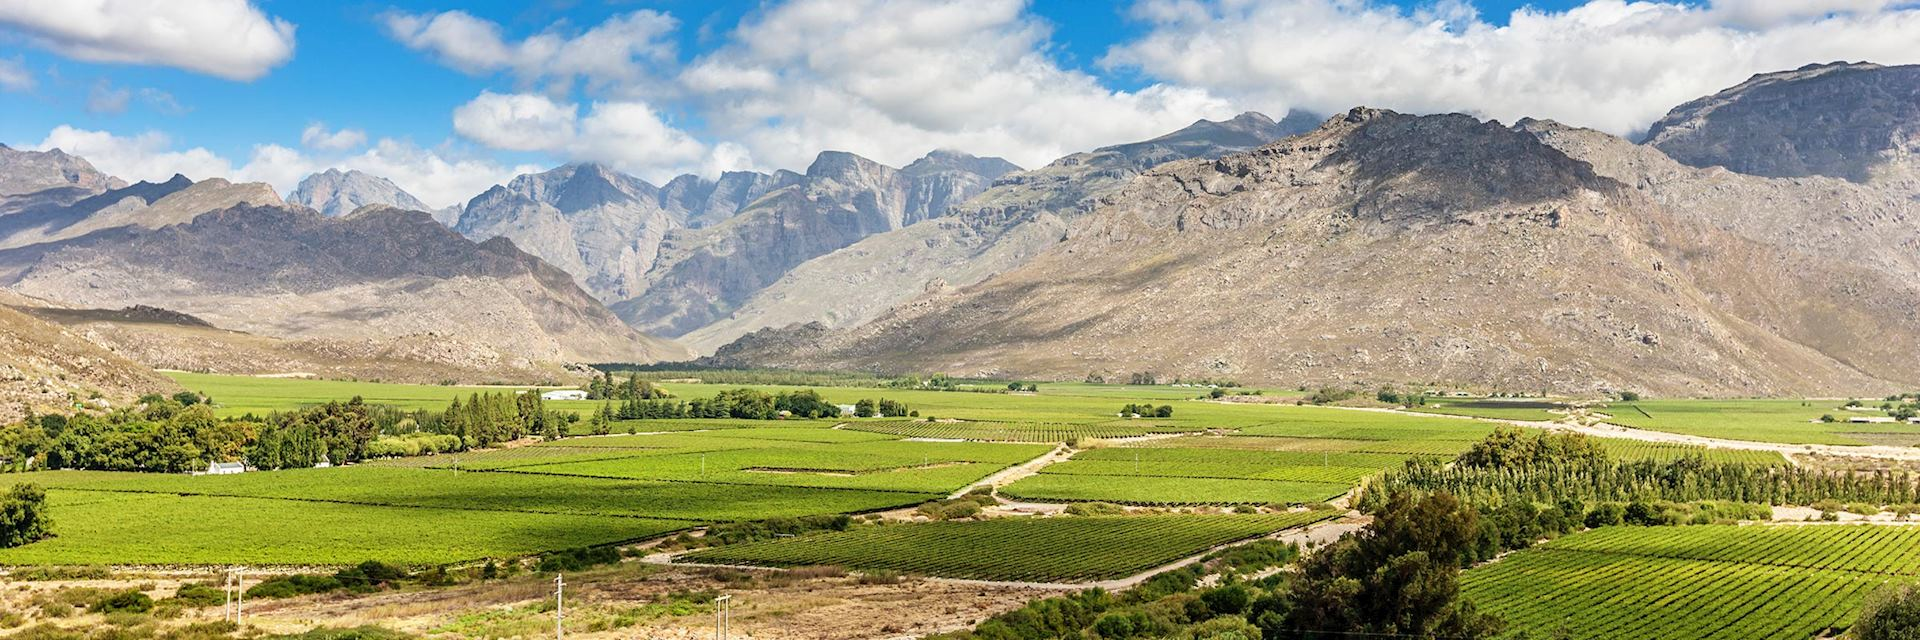 Western Cape winelands, South Africa